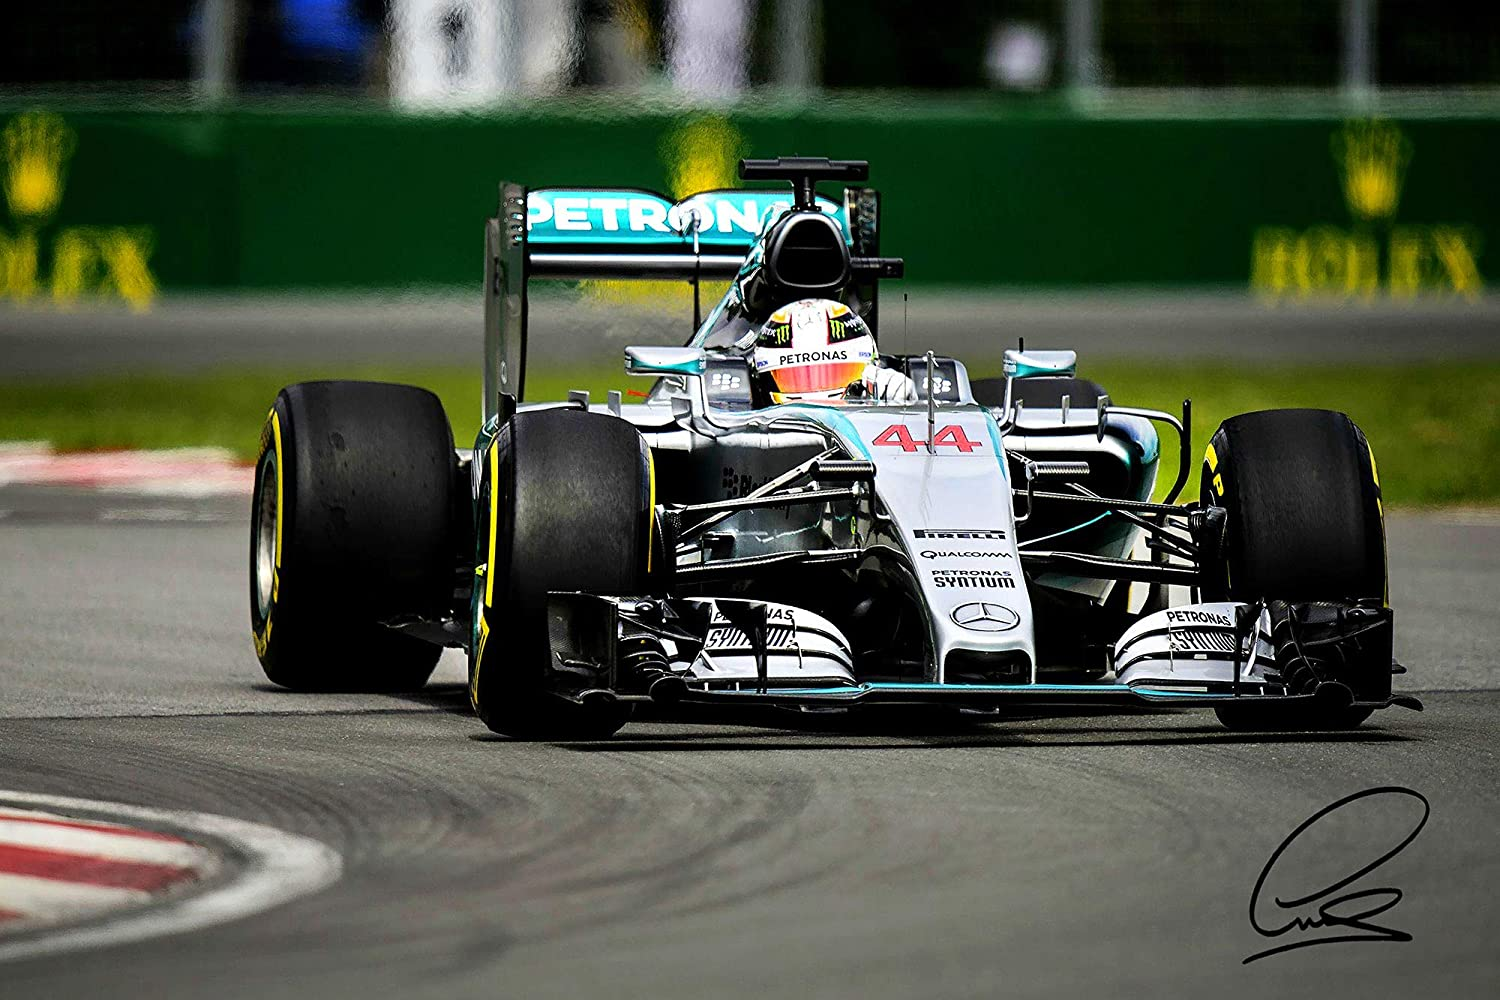 XOTIKS Mercedes AMG F1 Racing Pre-Printed Lewis Au Hamilton Max 67% OFF with OFFicial mail order